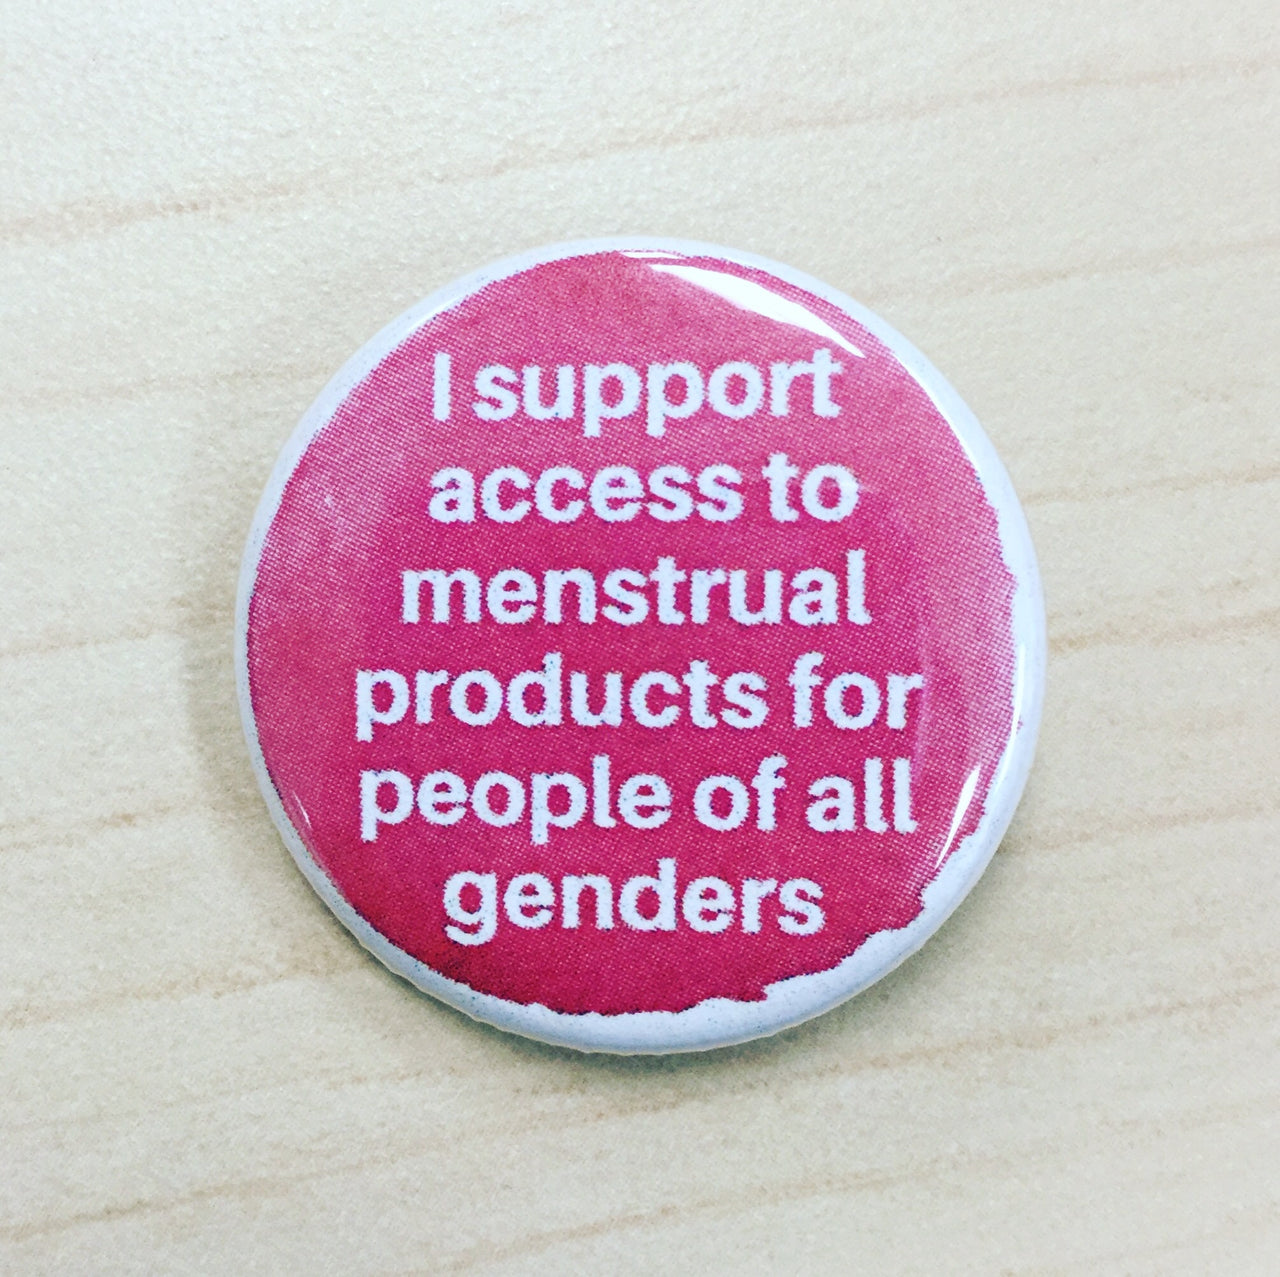 I support access to menstrual products for people of all genders - Radical Buttons